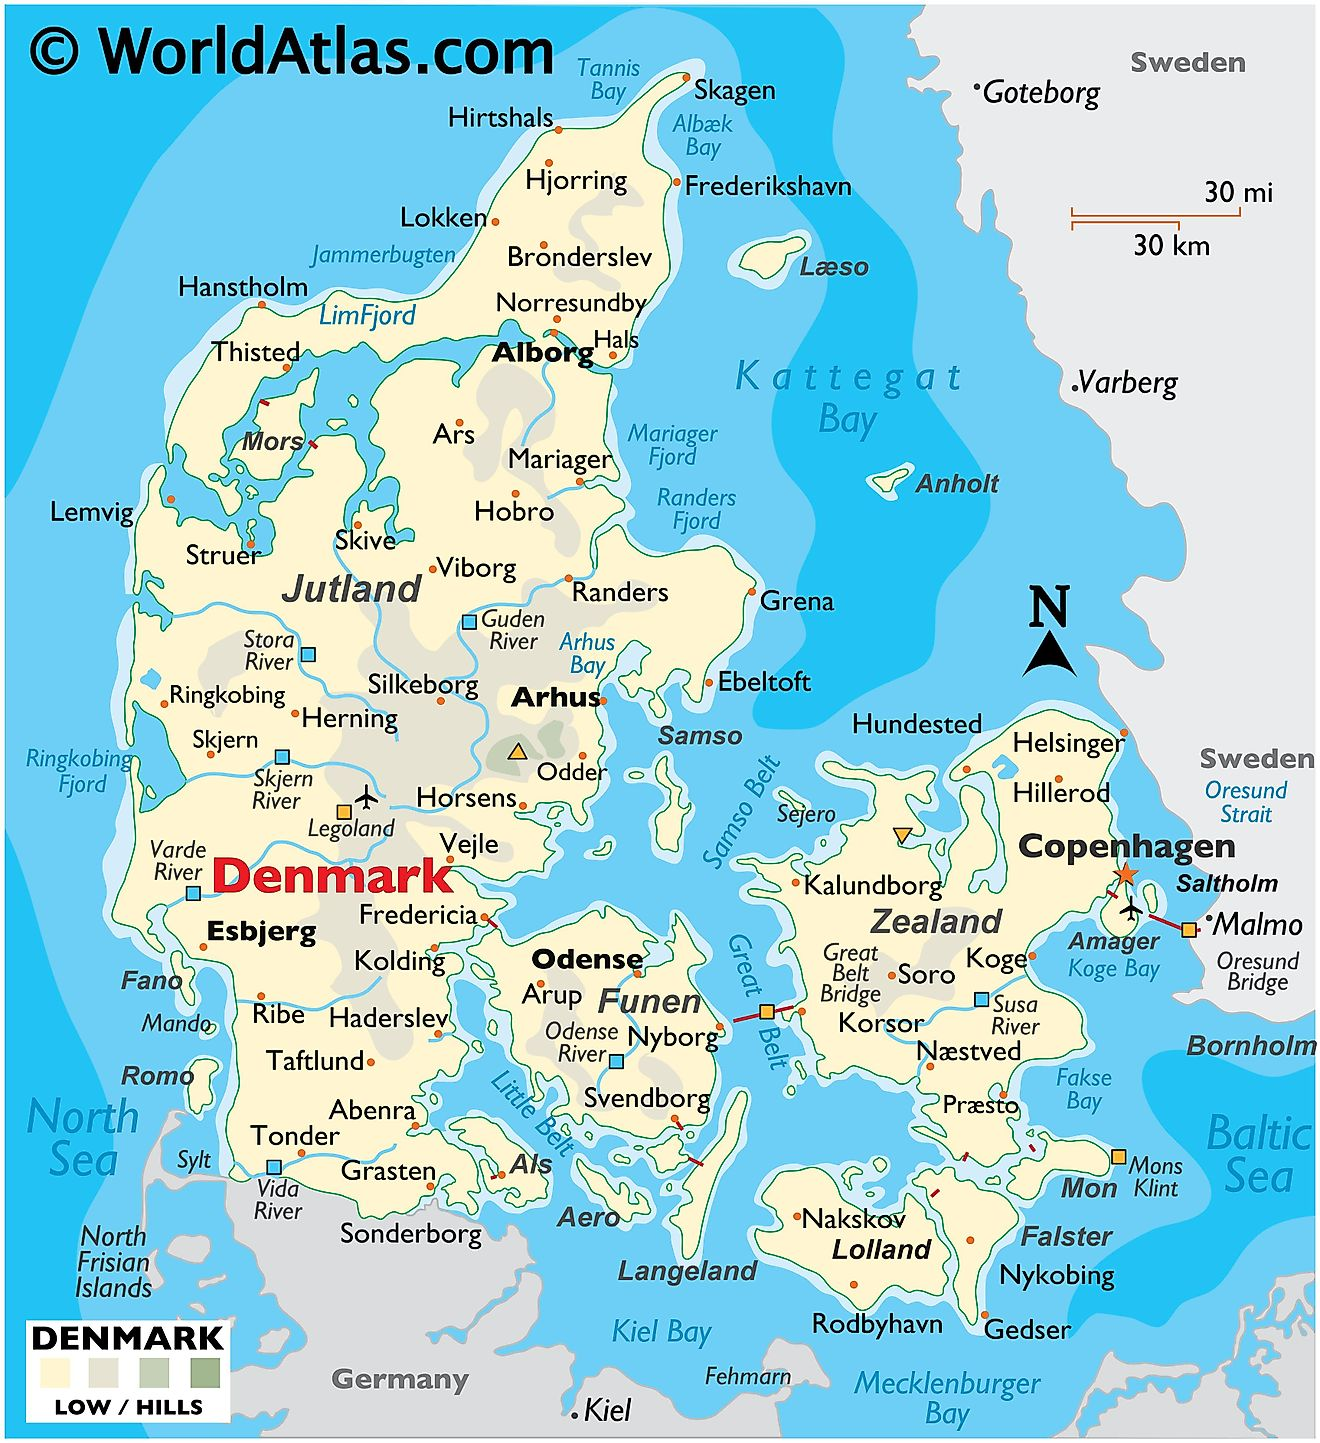 Physical Map of Denmark showing terrain, major rivers, extreme points, the Jutland Peninsula, main islands, important cities, international boundaries, etc.